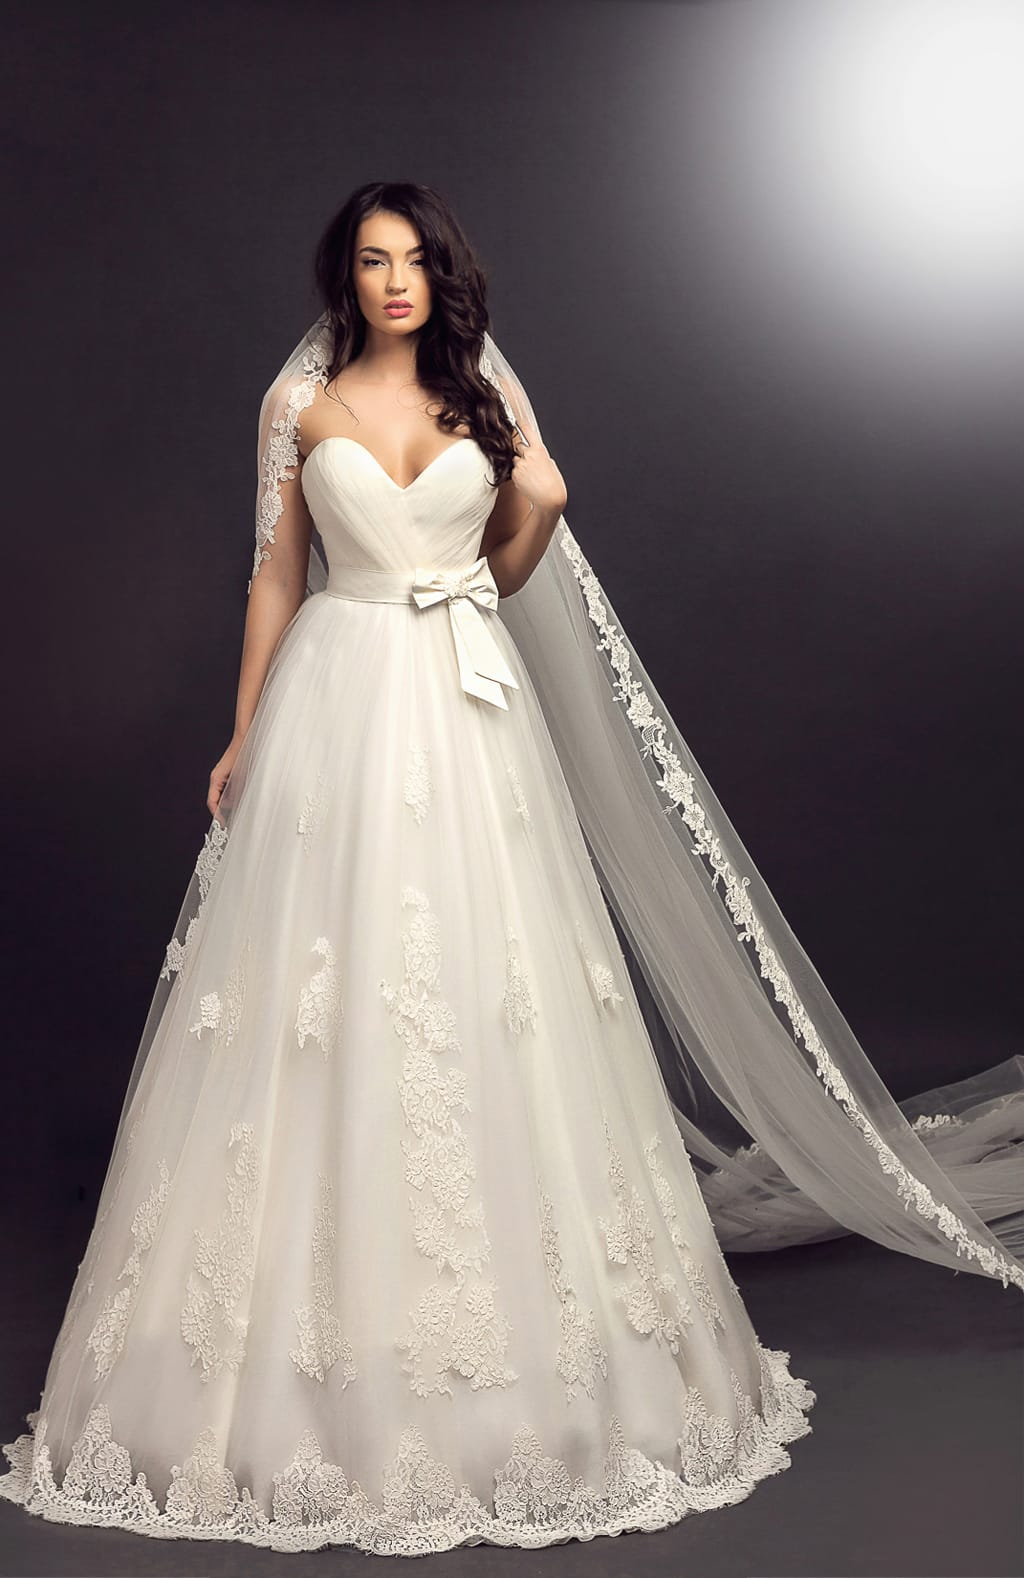 Palmer Model - Colectia Dreams - Adora Sposa